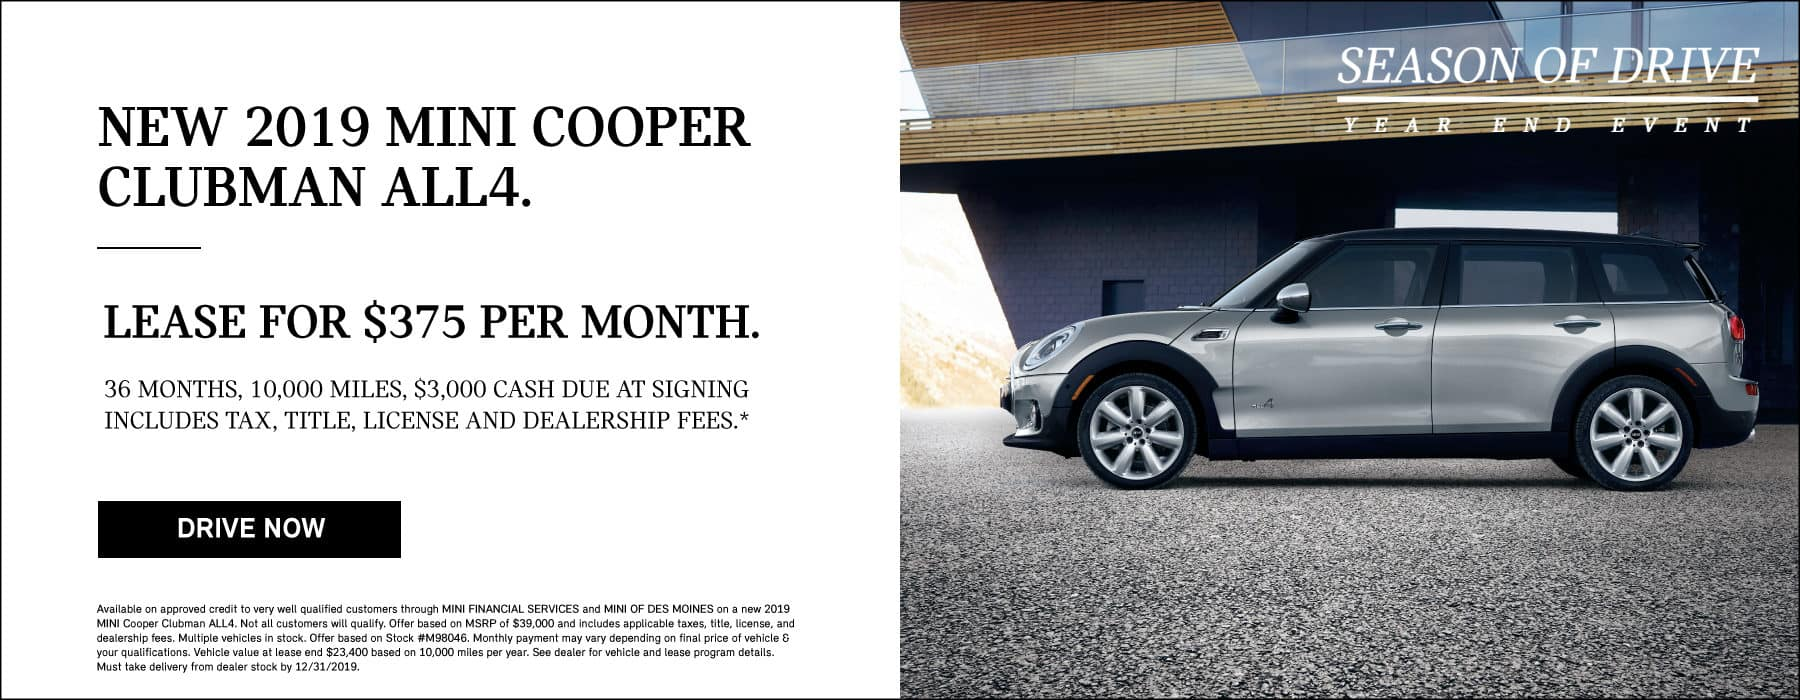 LEASE A NEW 2019 MINI COOPER CLUBMAN ALL4 FOR $375 PER MONTH.